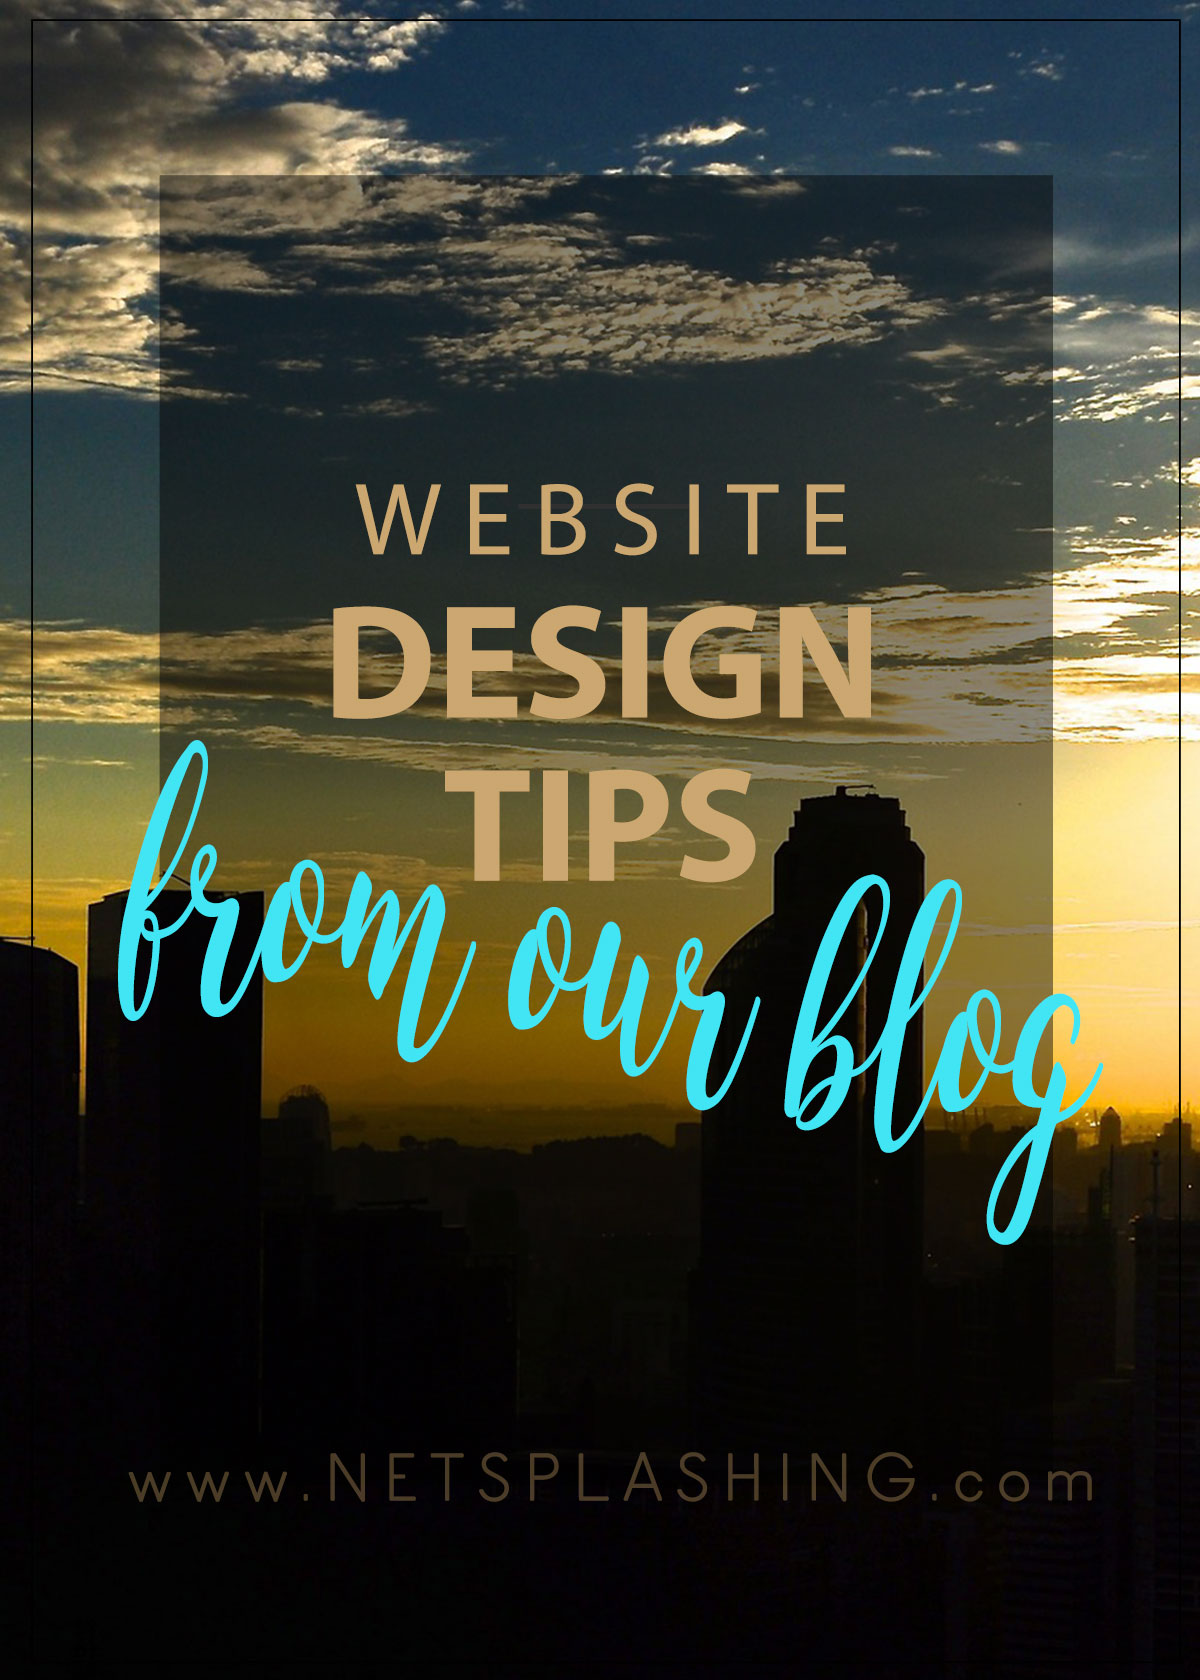 Web Design Elements You Should Avoid Having on Your Site